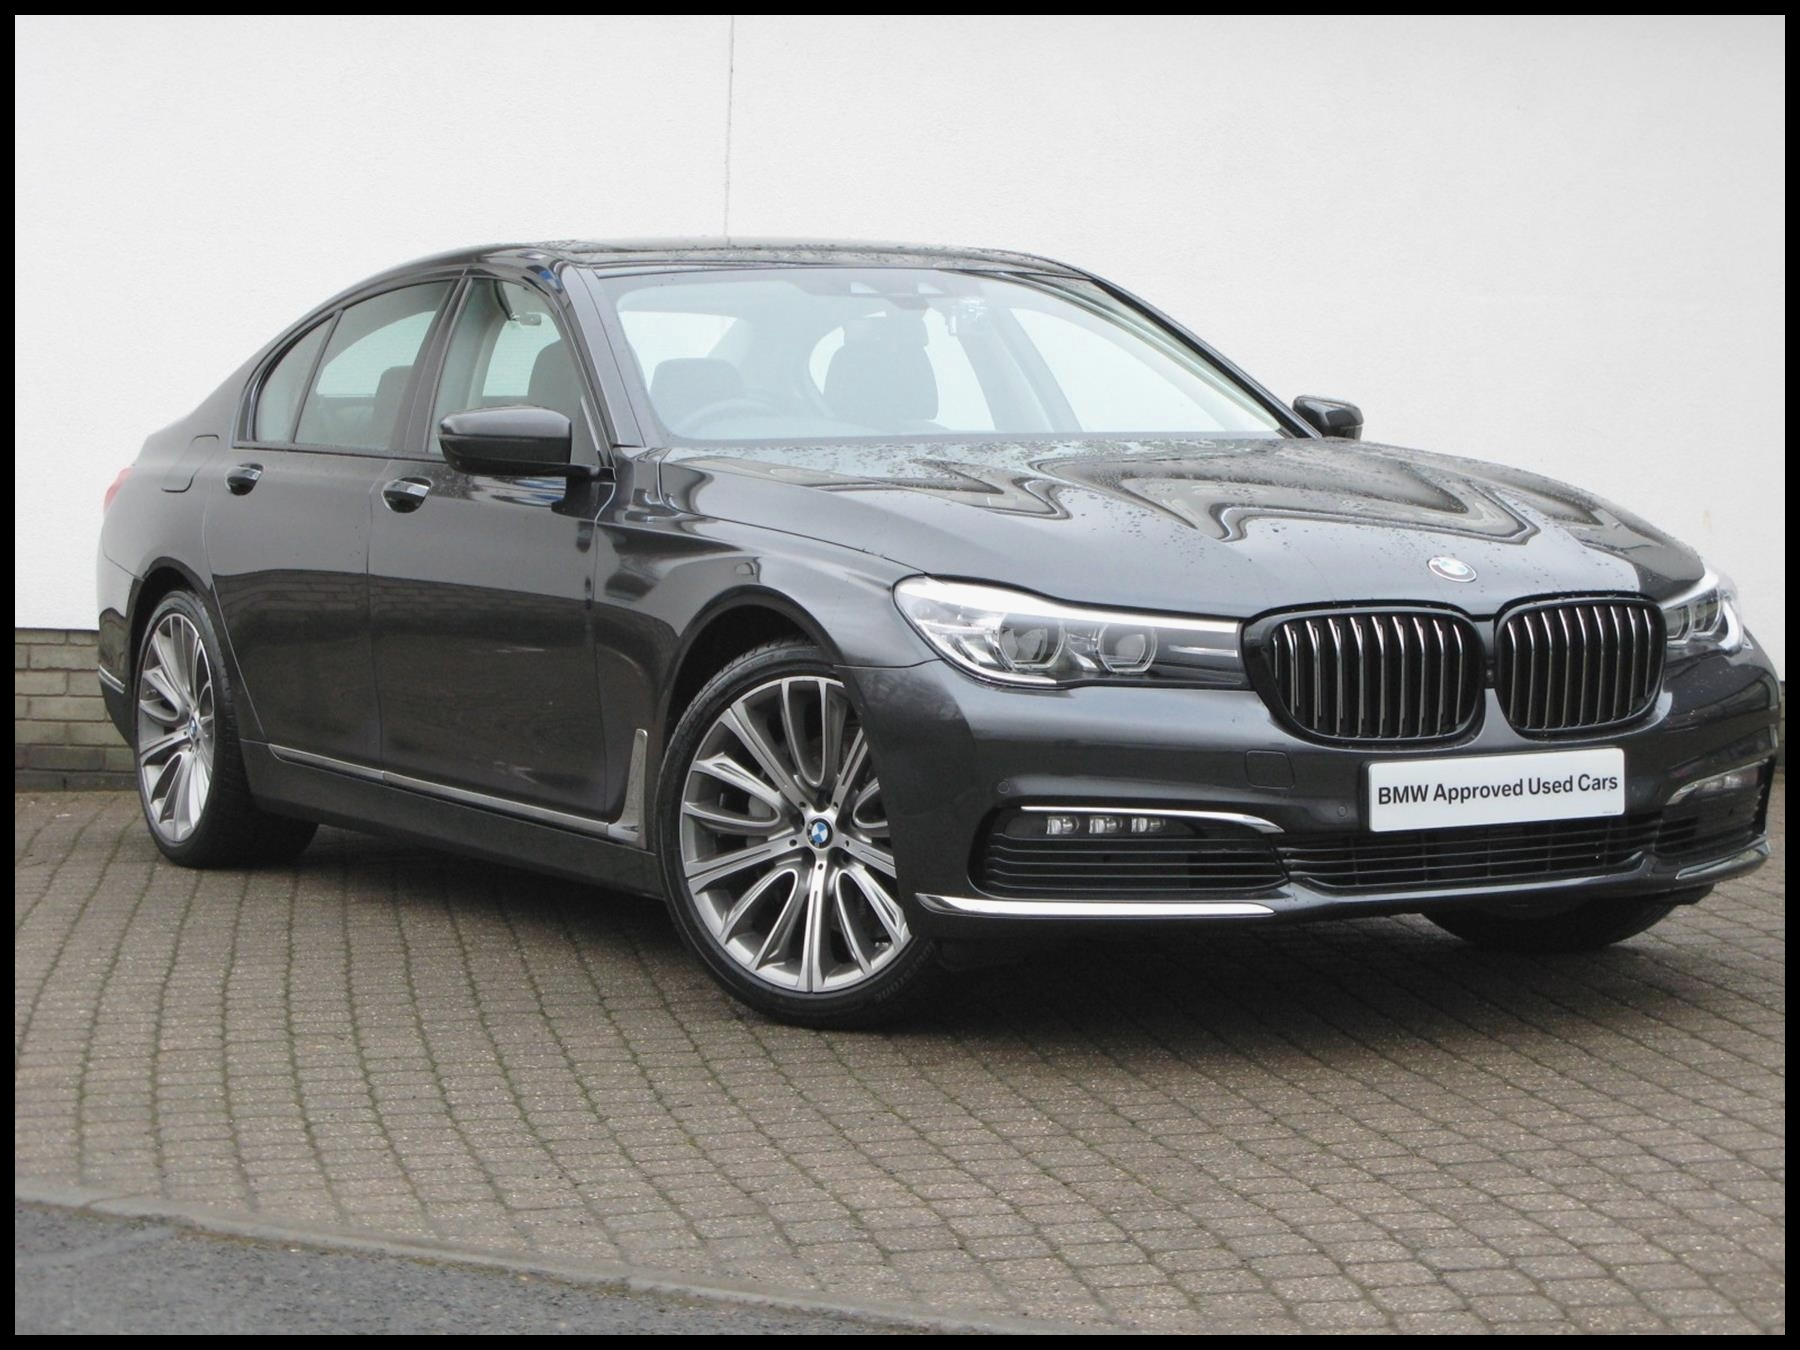 Bmw 7 Series for Sale Awesome Used 2017 Bmw 7 Series G11 740d Xdrive Saloon B57